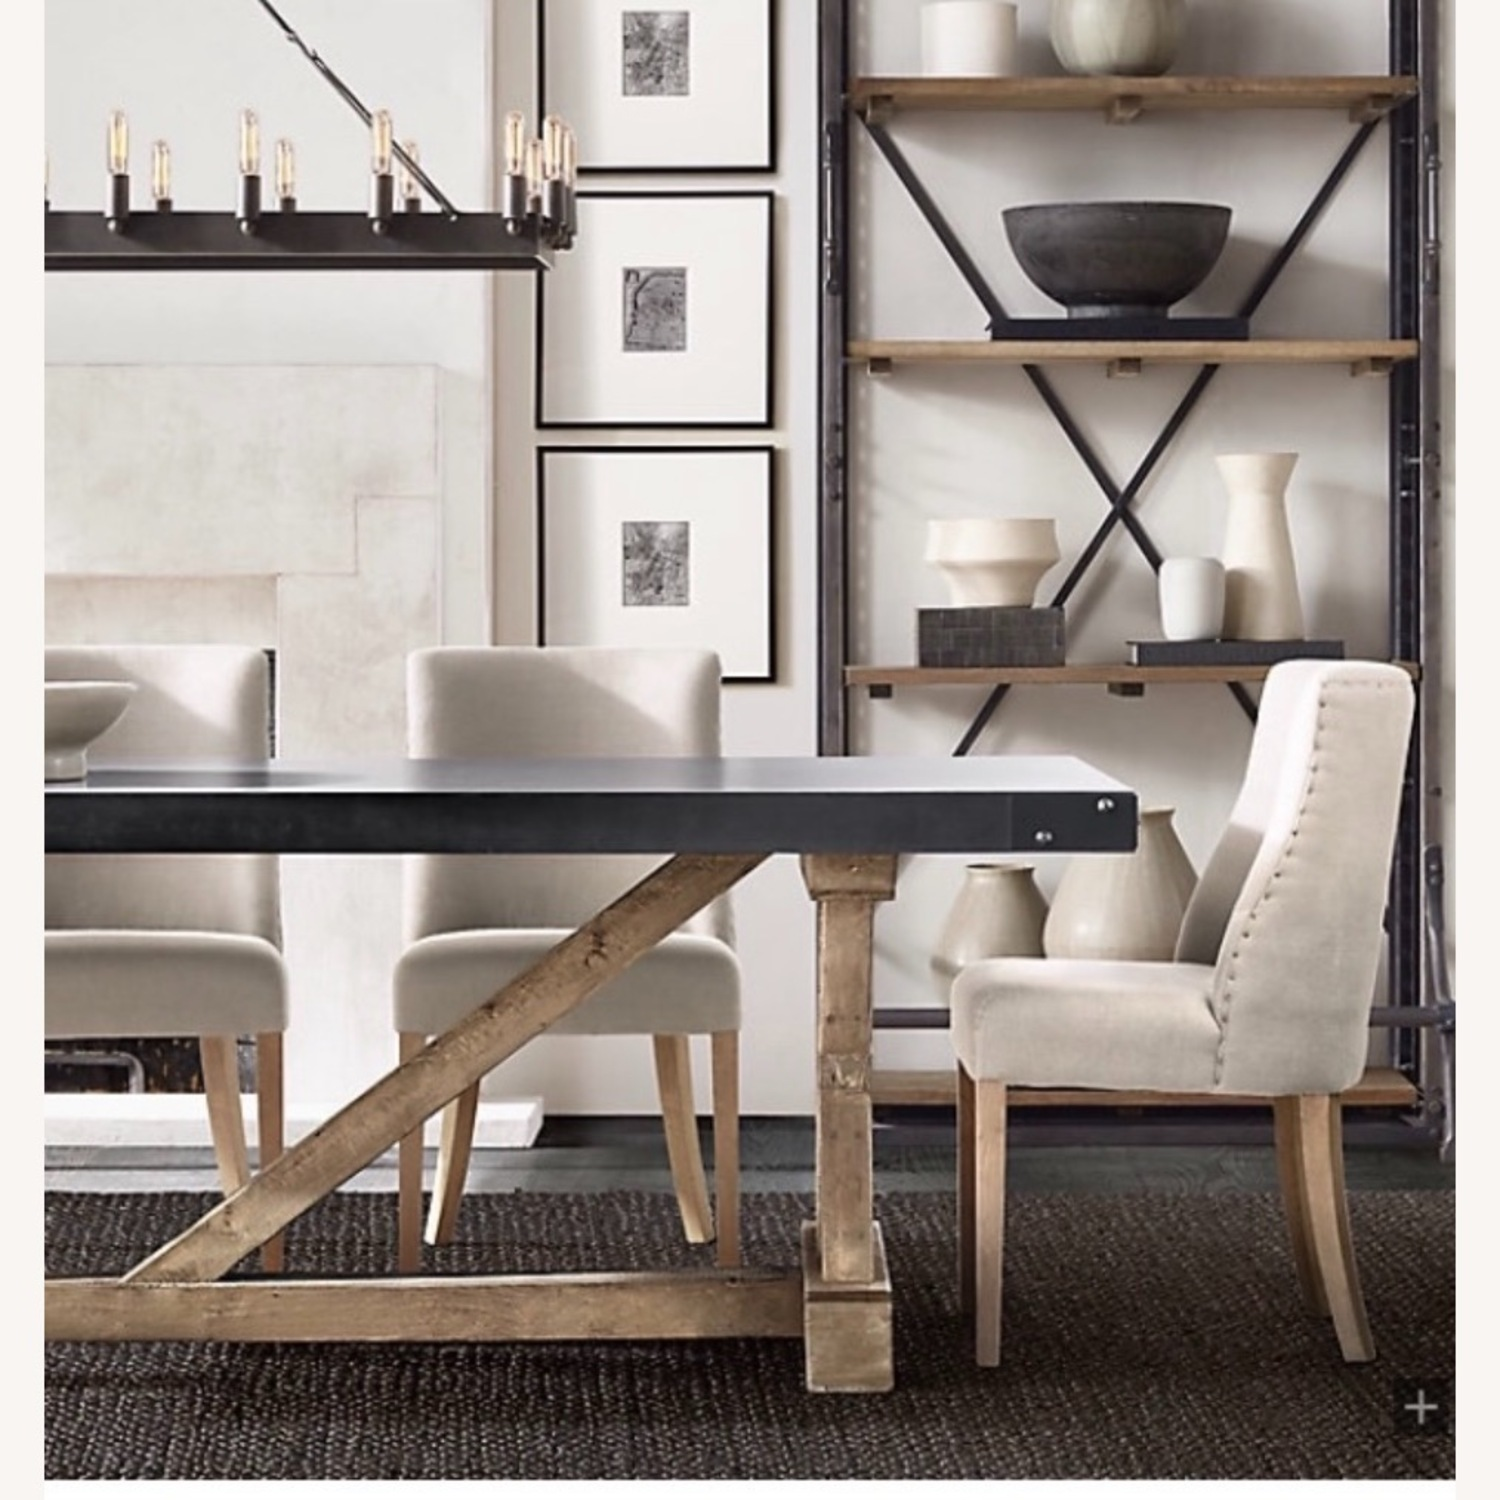 Restoration Hardware Salvaged Wood and Concrete Dining Table - image-0